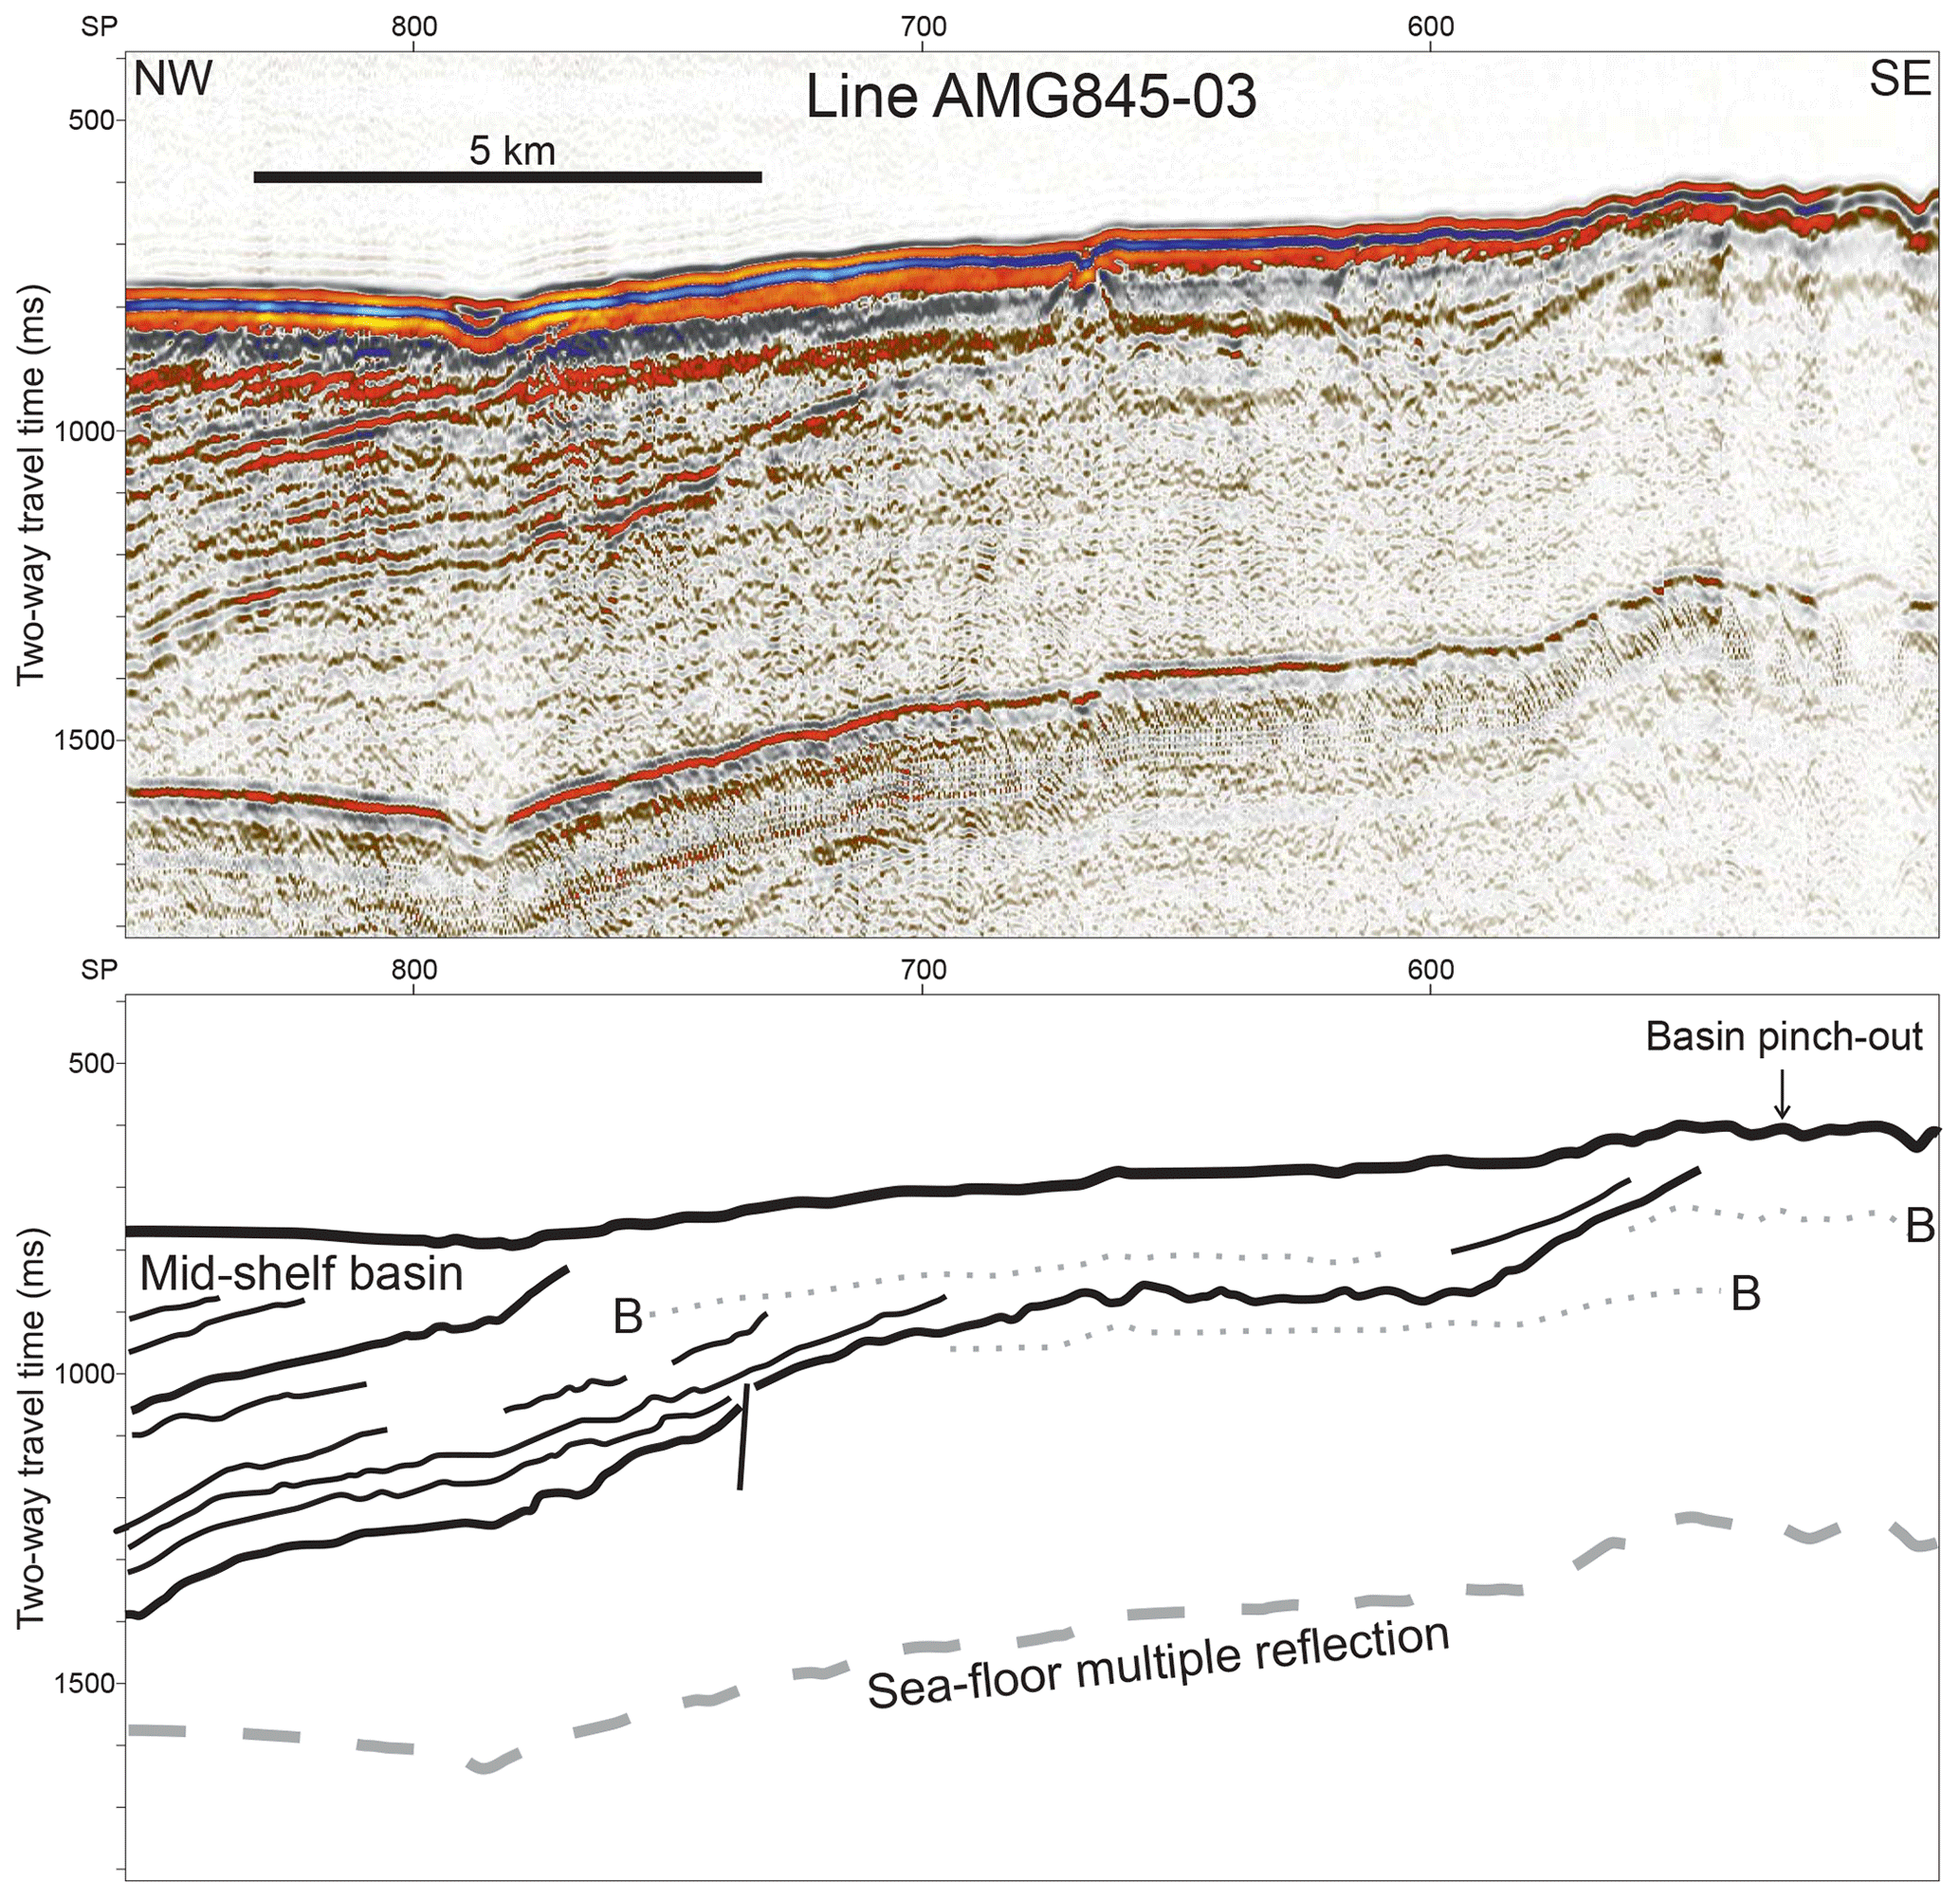 TC - Subglacial hydrological control on flow of an Antarctic